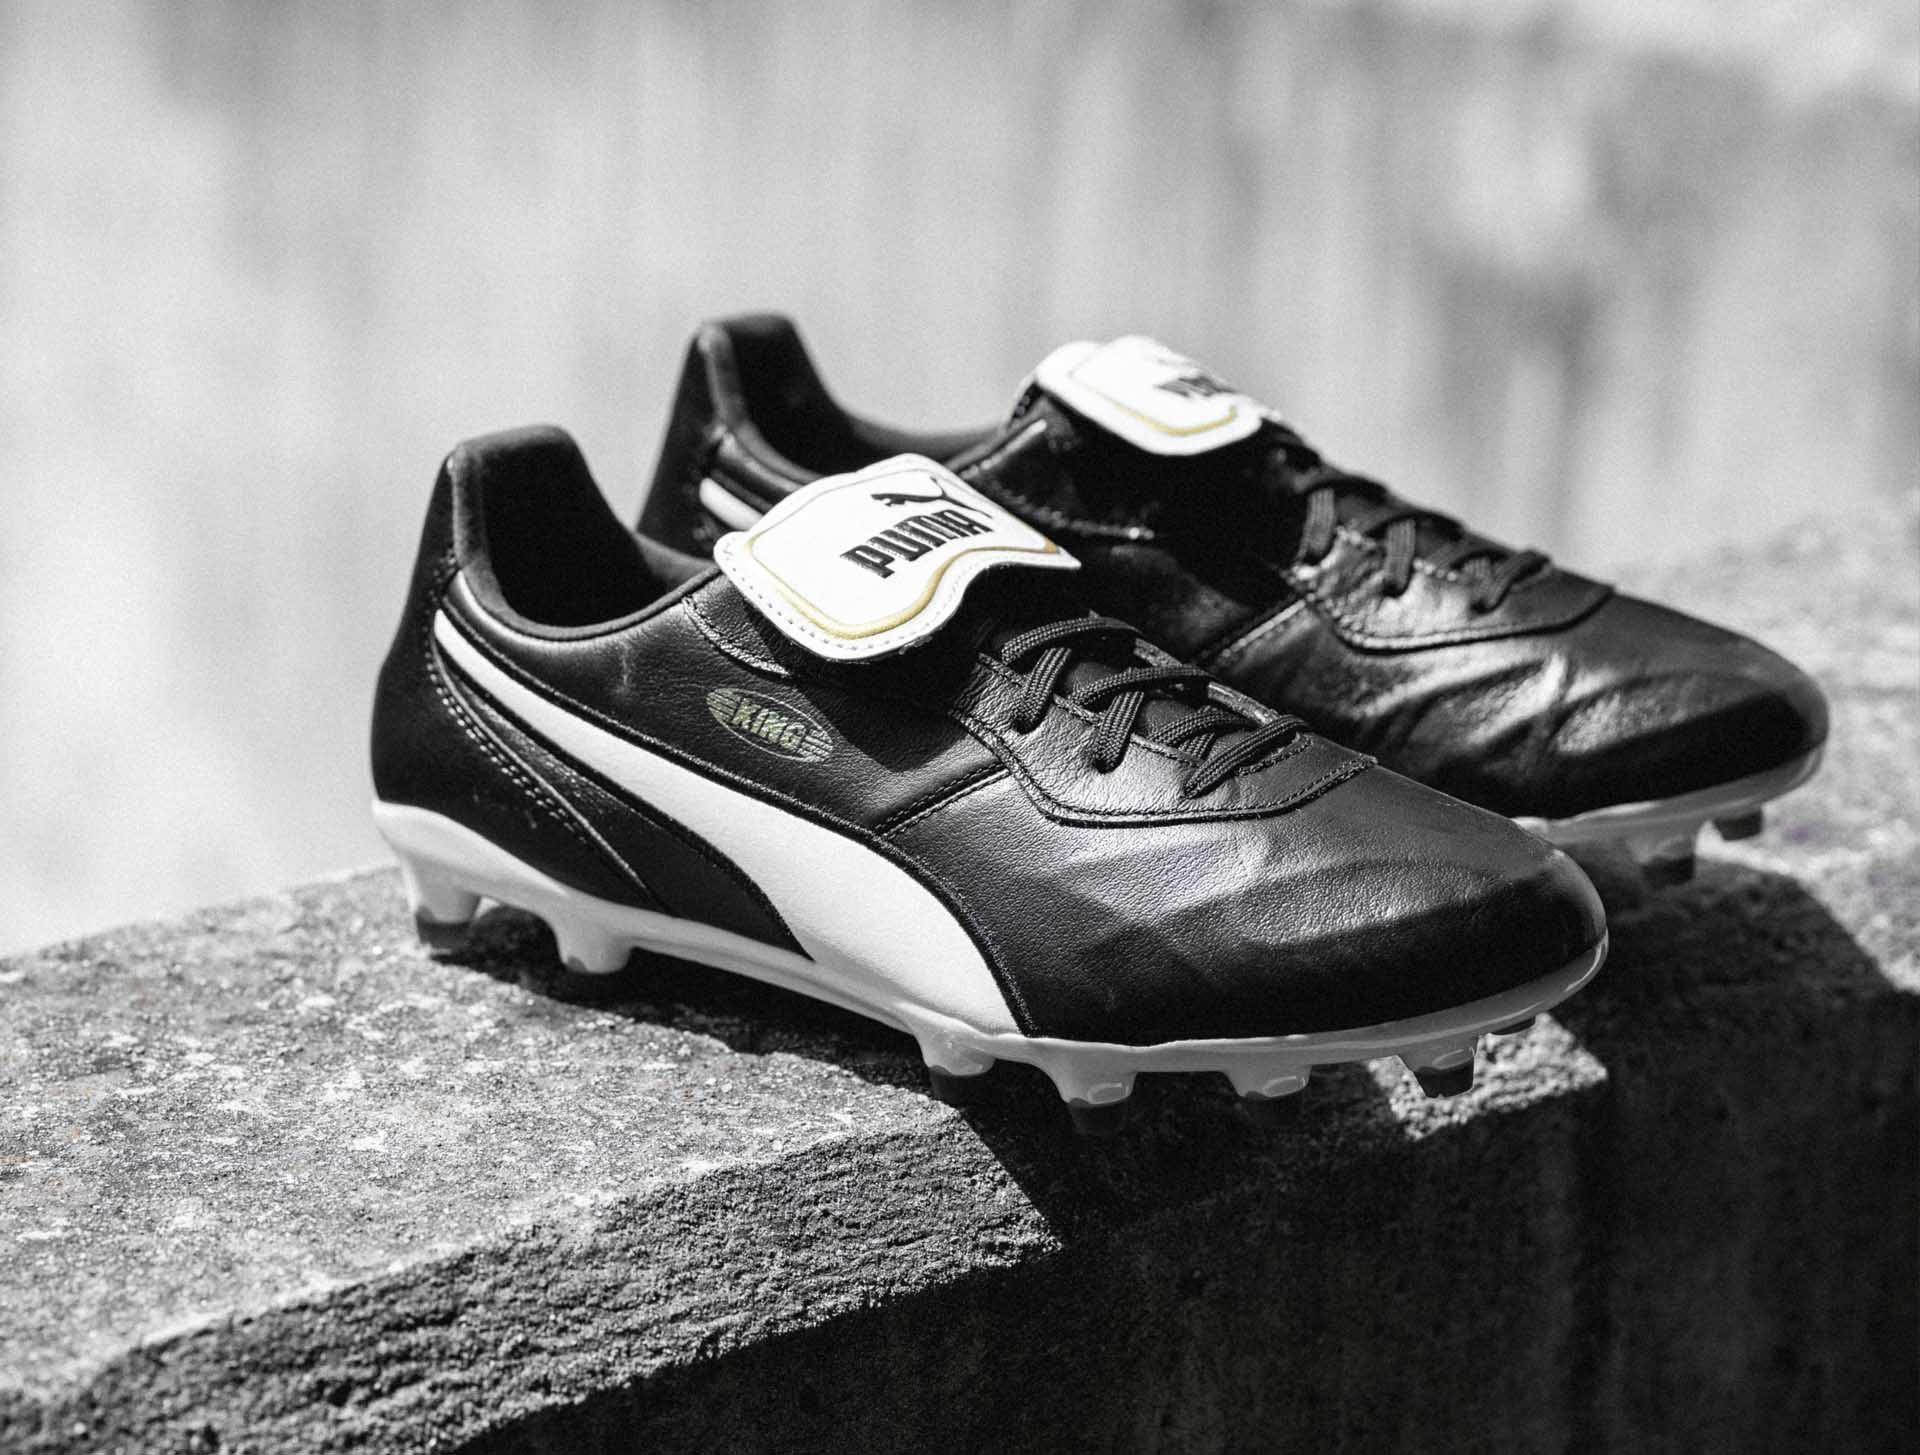 PUMA Update The King Top Series - SoccerBible